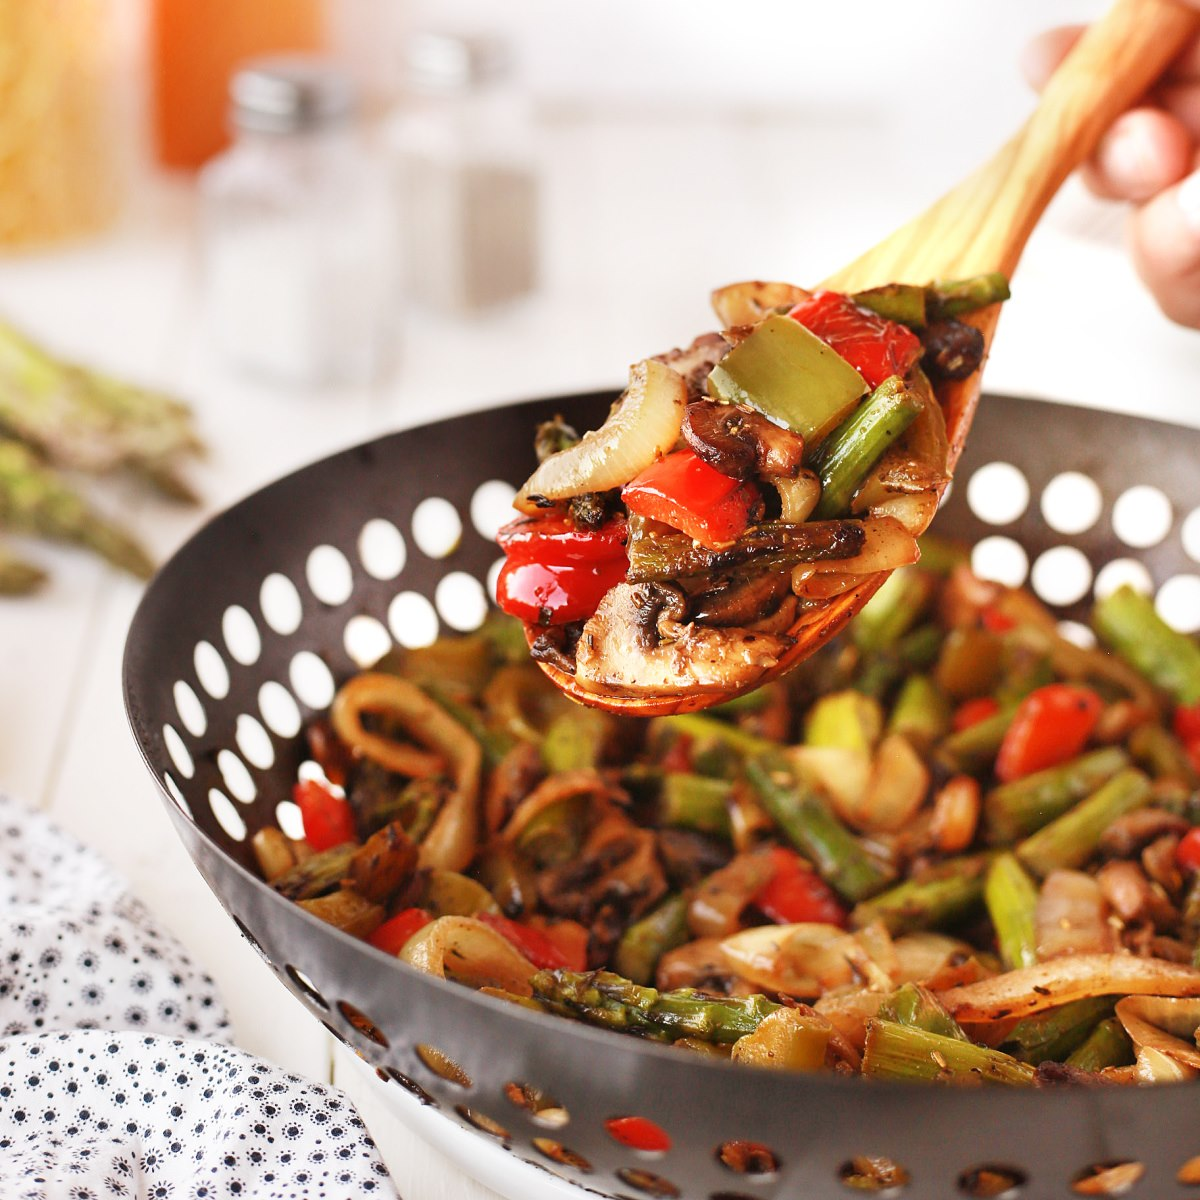 BBQ wok vegetables being spooned out of the BBQ wok with a wooden spoon